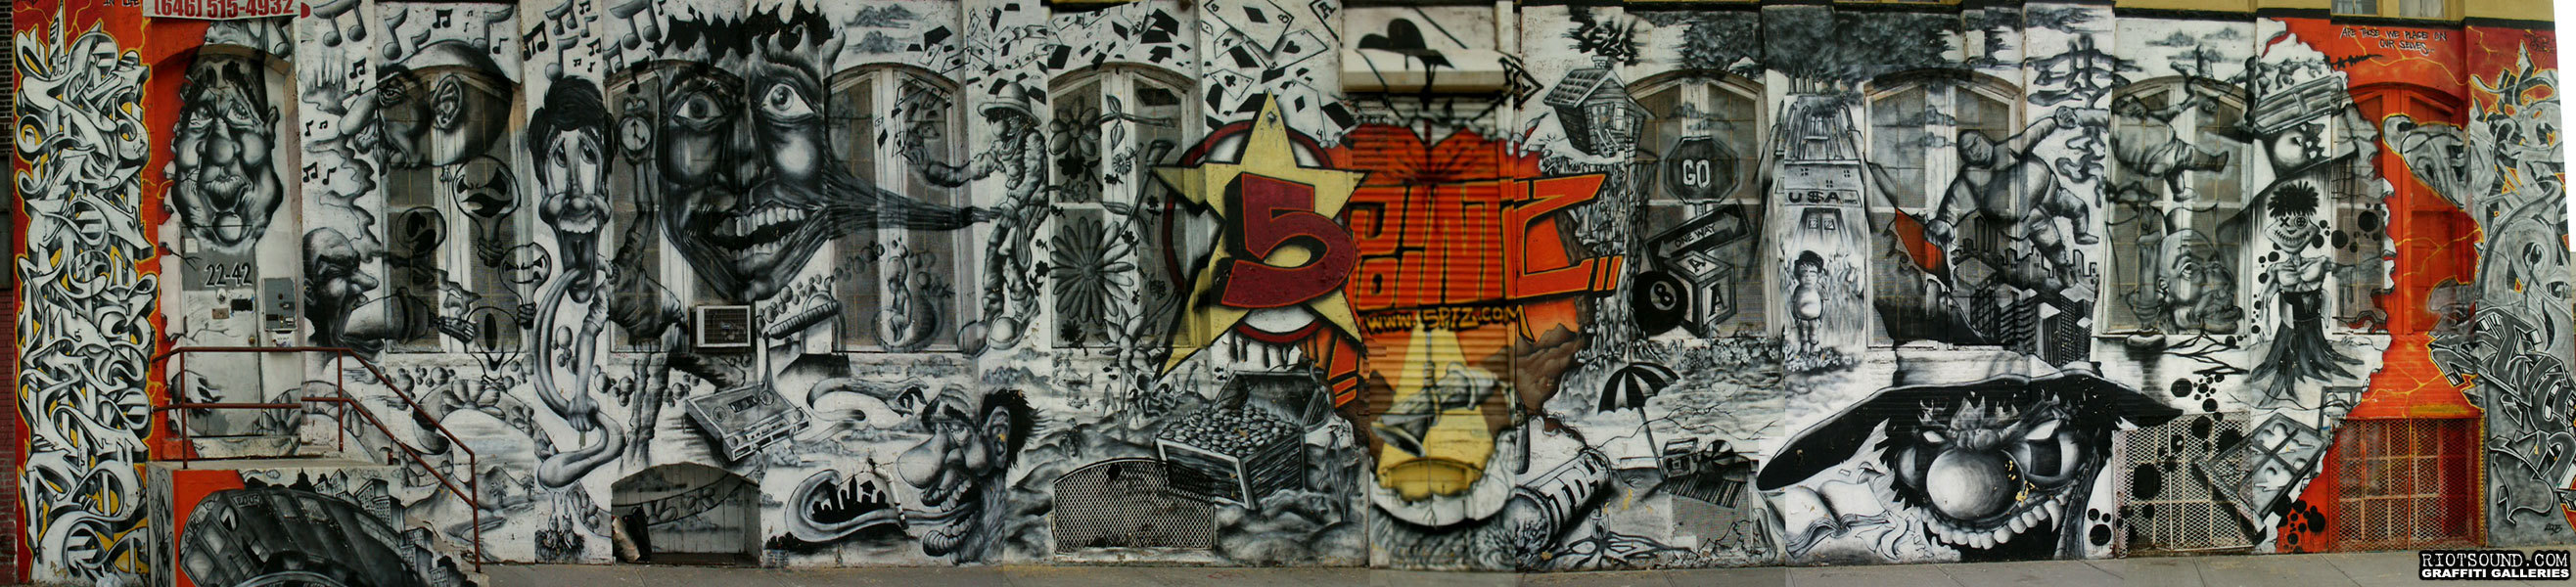 5 pointz outside